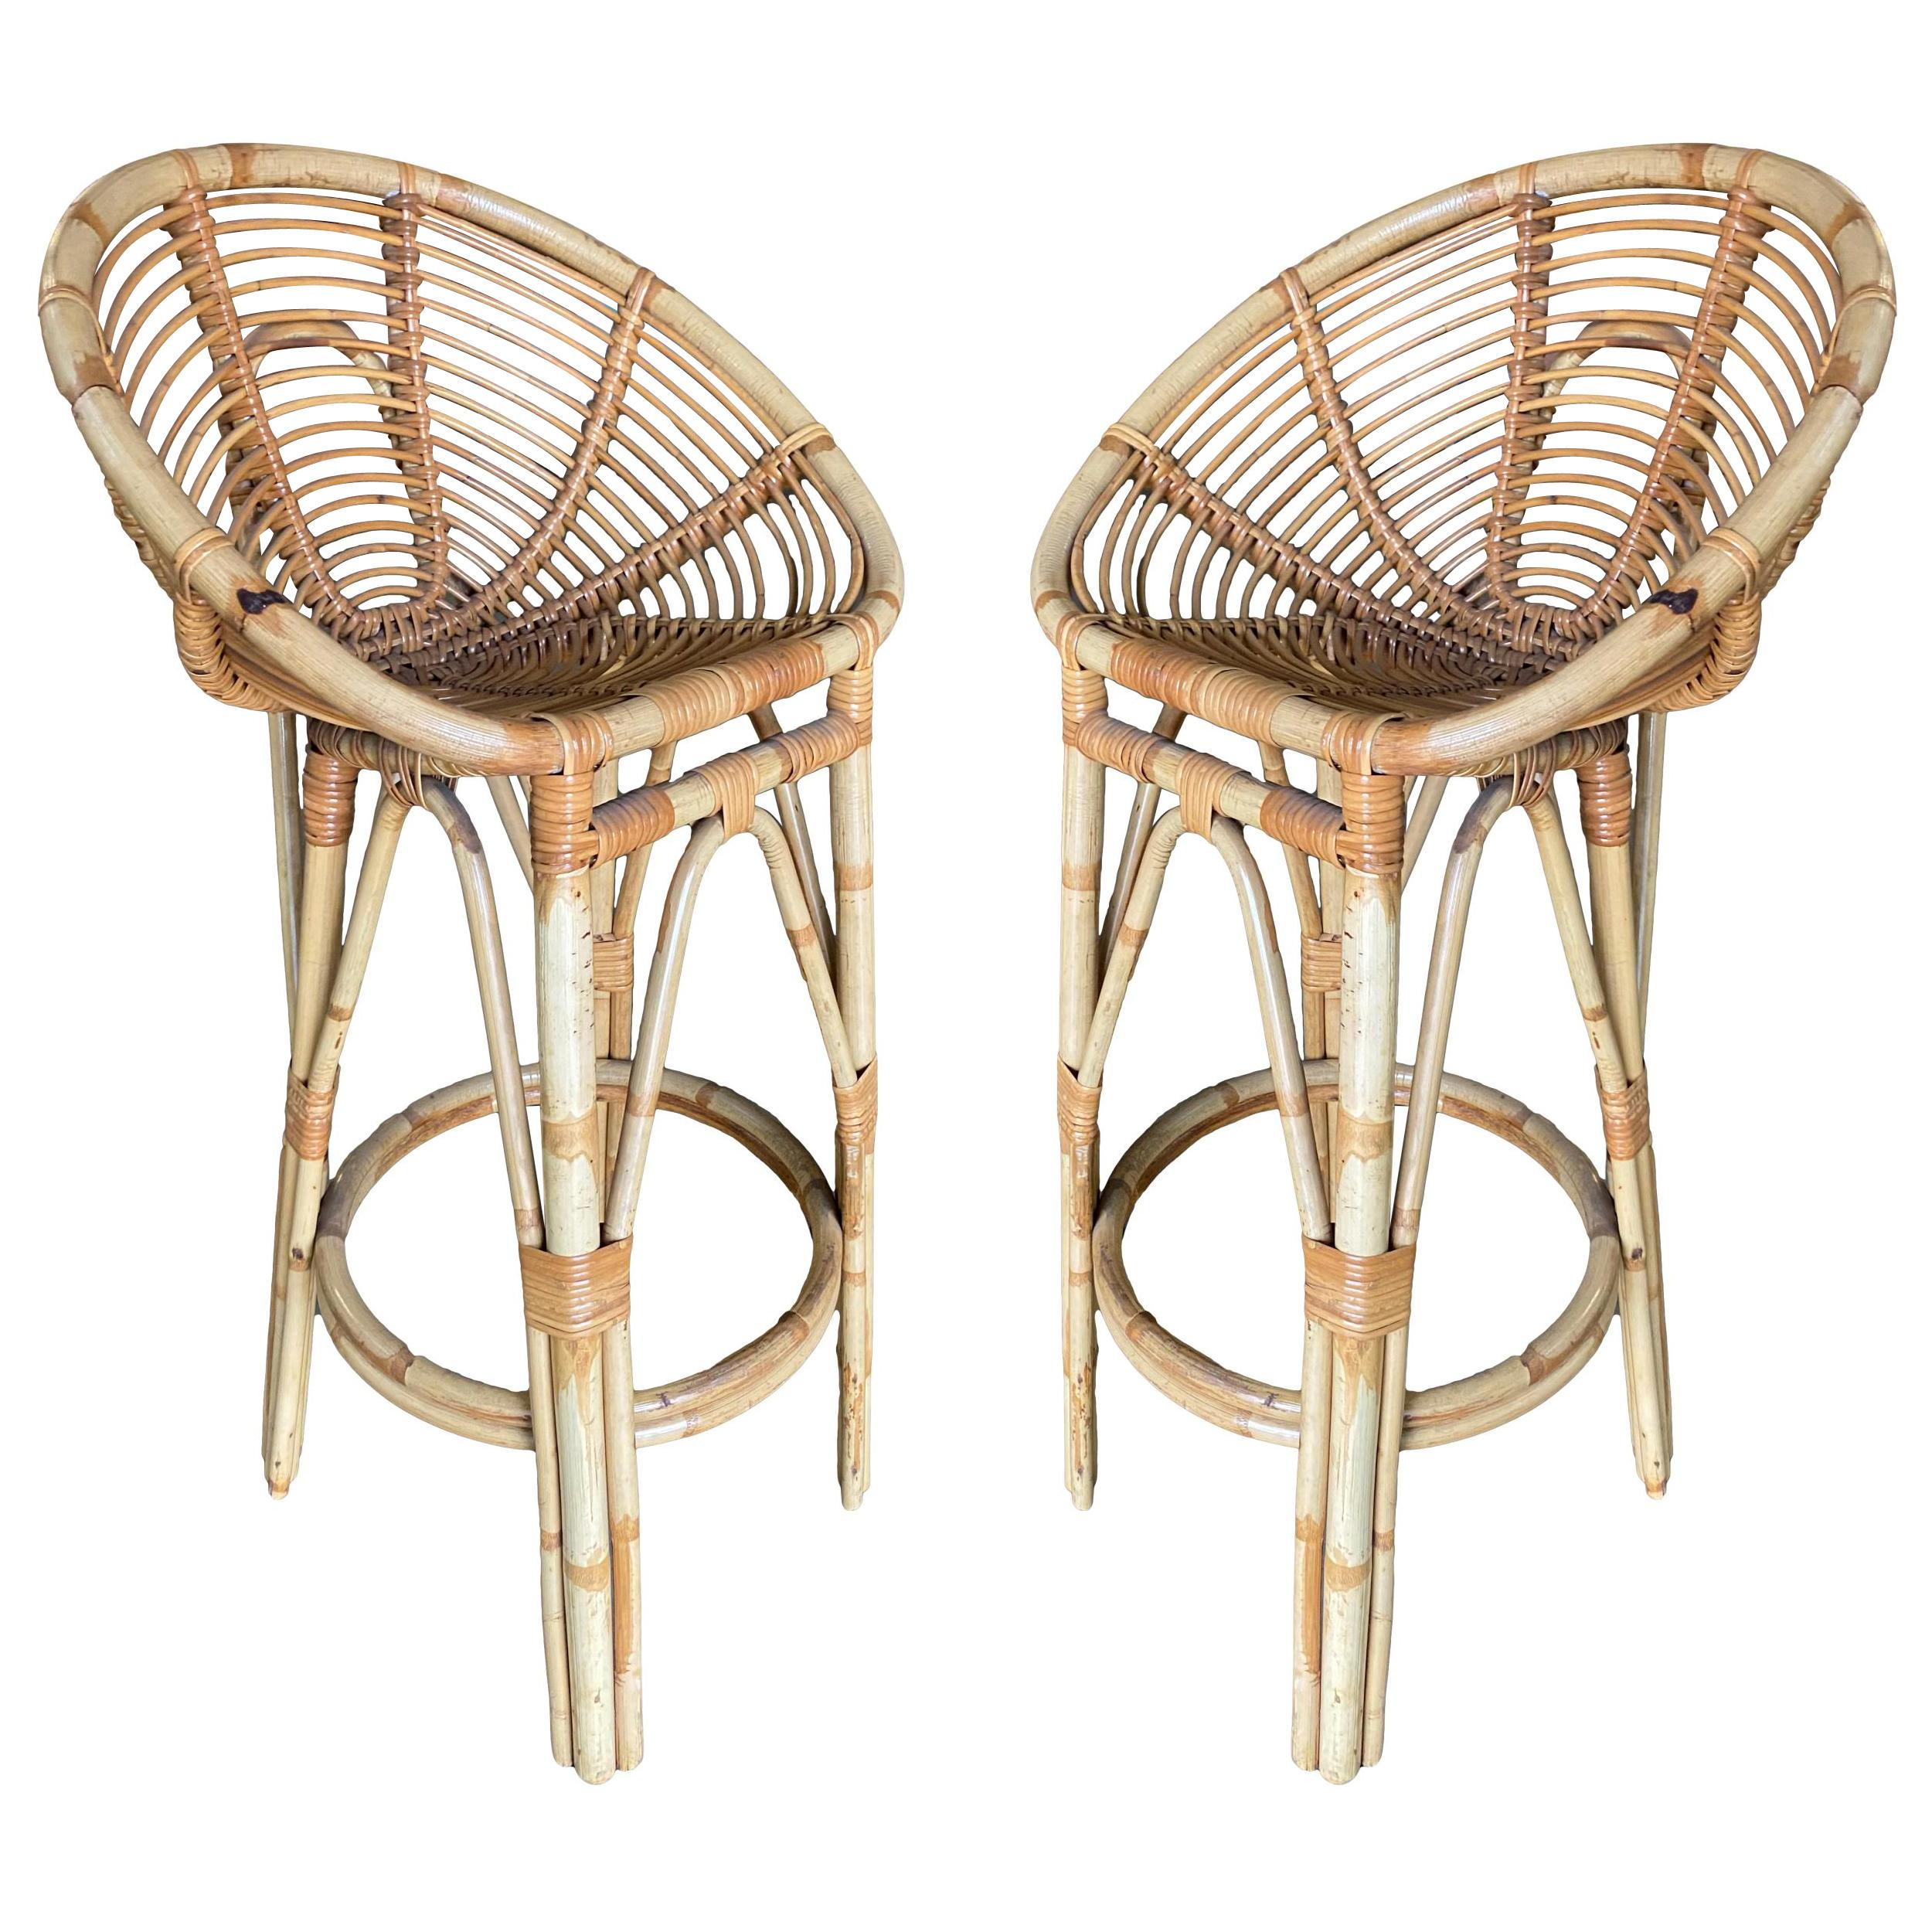 Restored Stick Rattan Bar Stools in the Manner of Albini, Pair